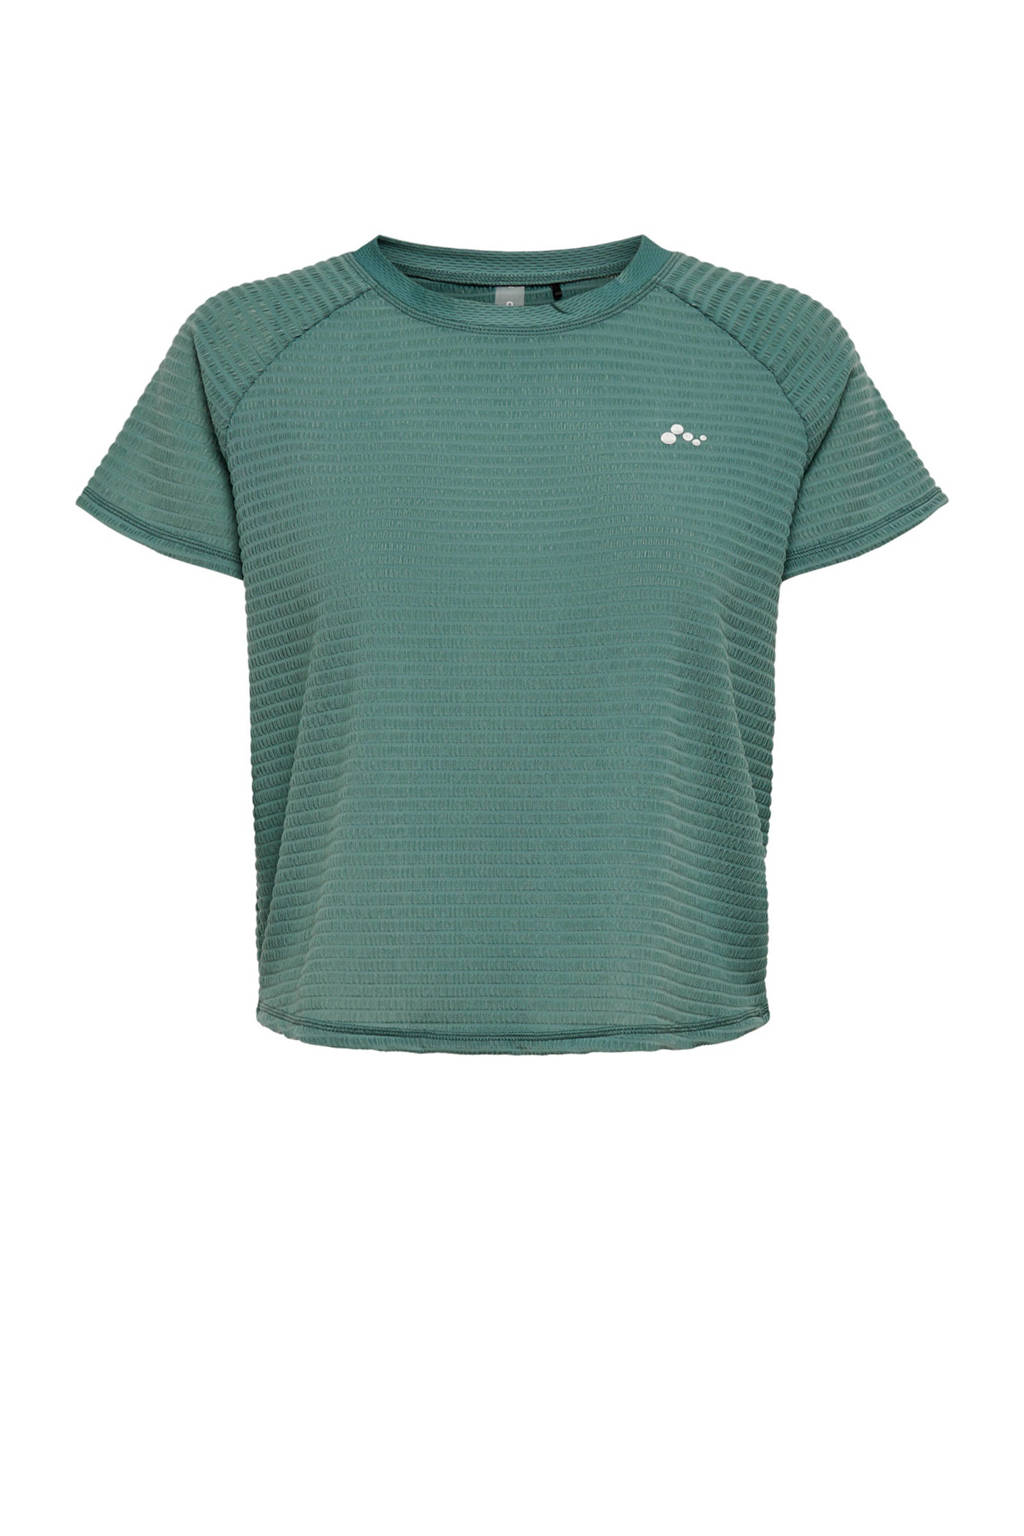 ONLY PLAY sport T-shirt Omelia groen, Groen